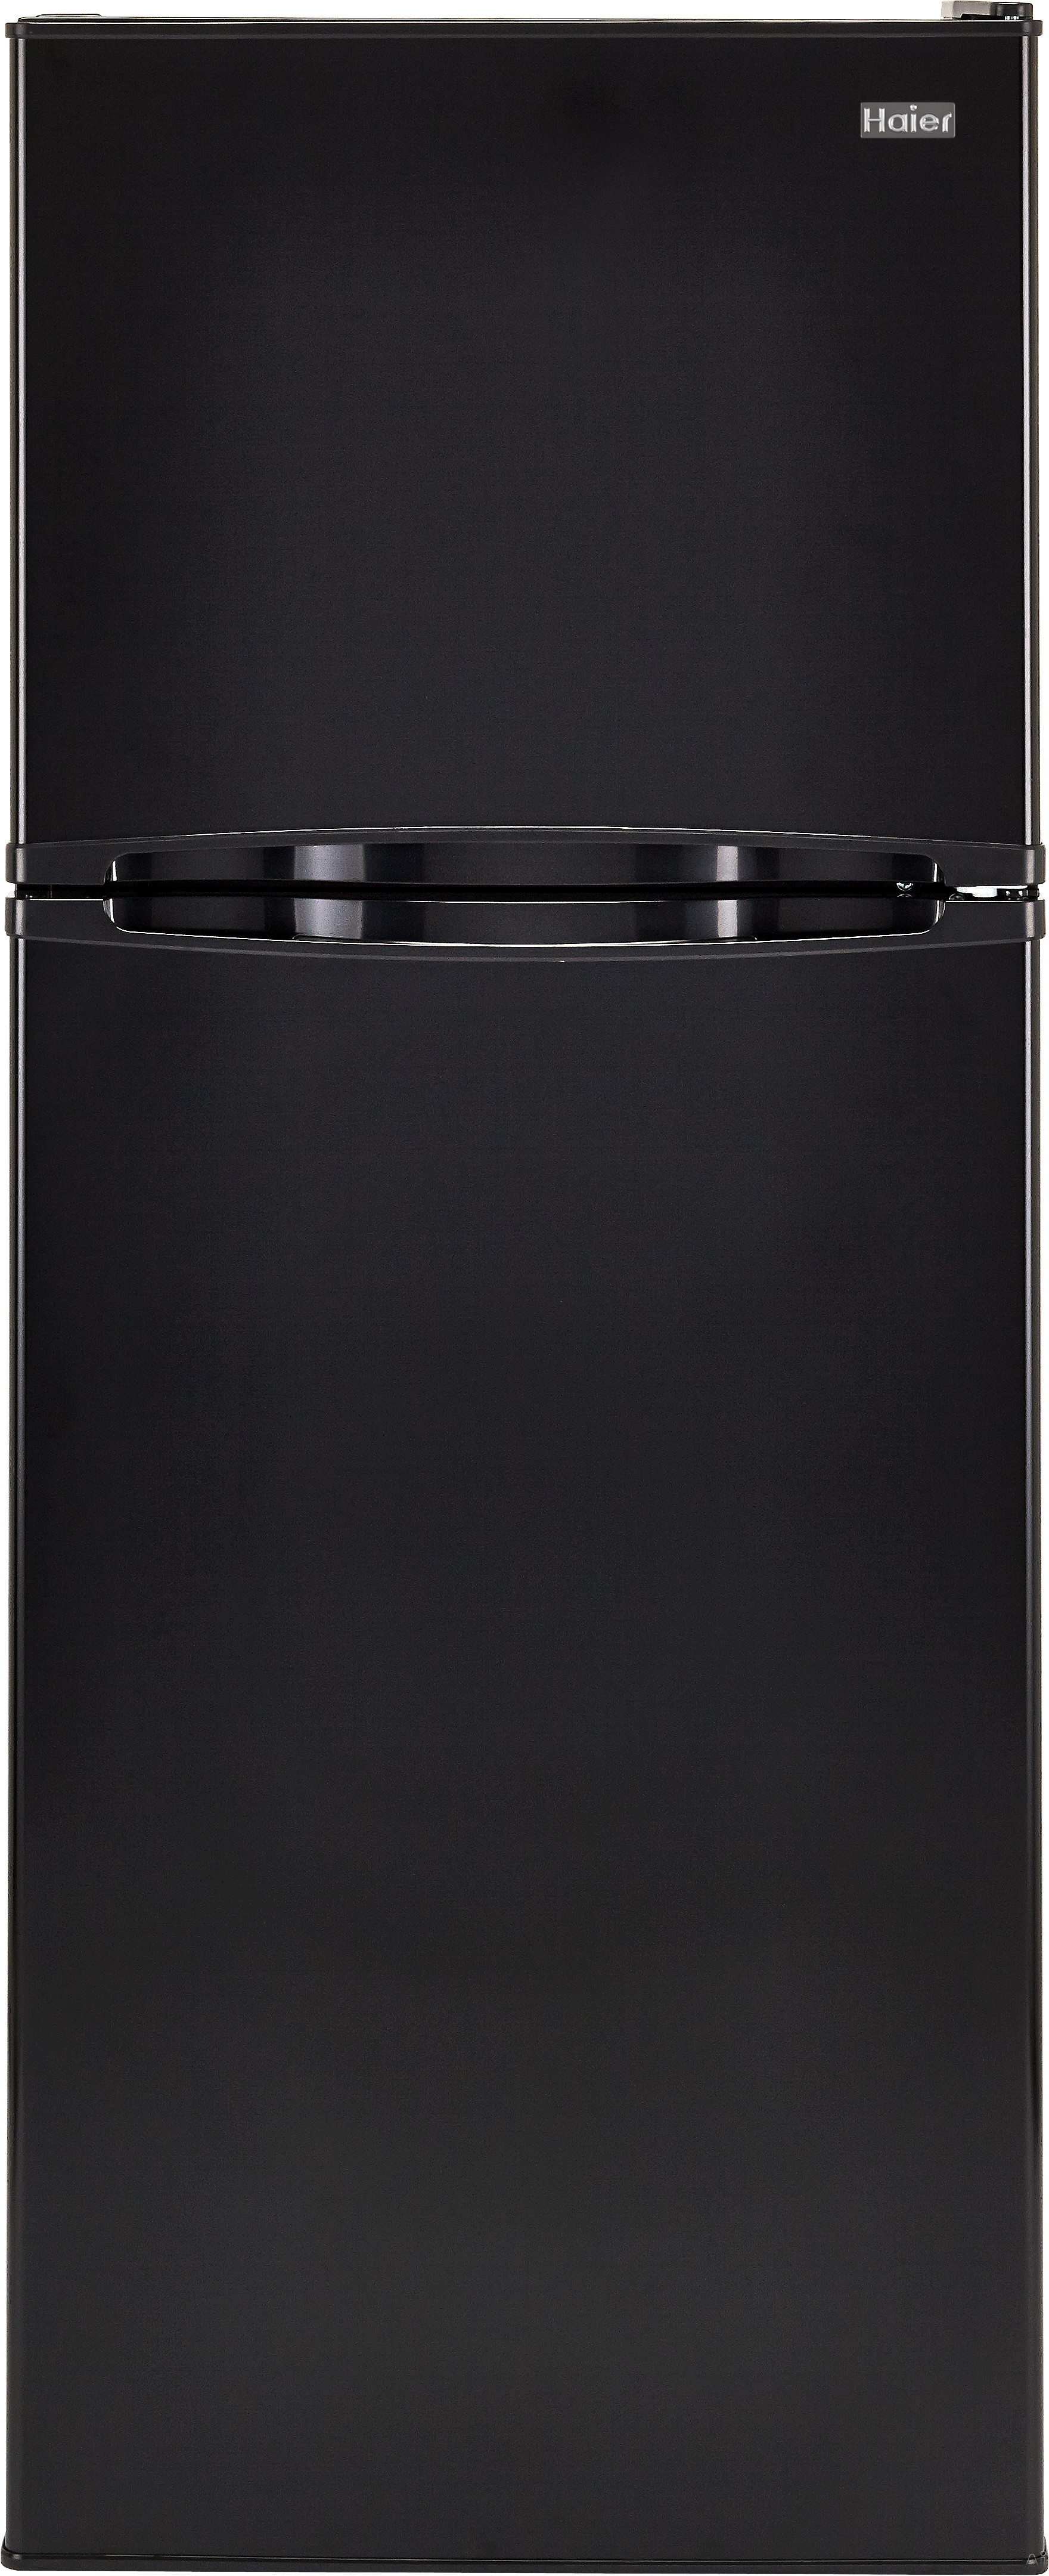 Haier HA12TG21SB 115 cu ft Top Mount Refrigerator with 2 Spill Proof Glass Shelves Humidity Controlled Crisper 4 Door Bins 1 Freezer Shelf 2 Freezer Door Bins and ADA Compliance Black